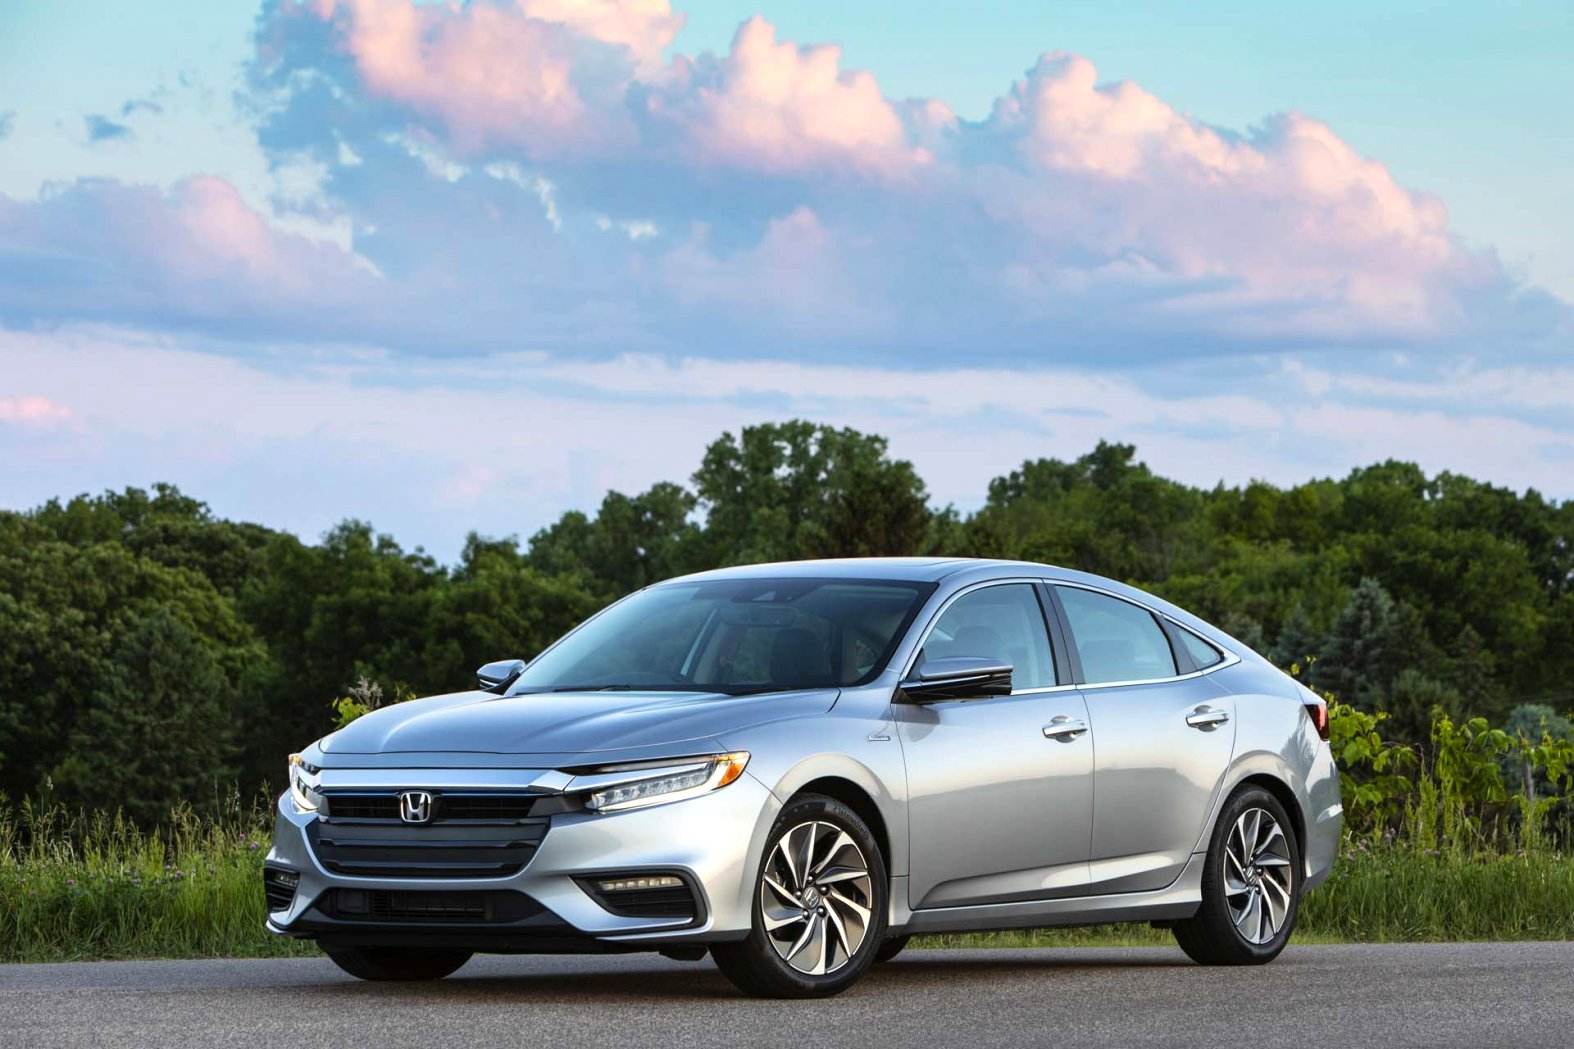 honda insight 2020 review Images